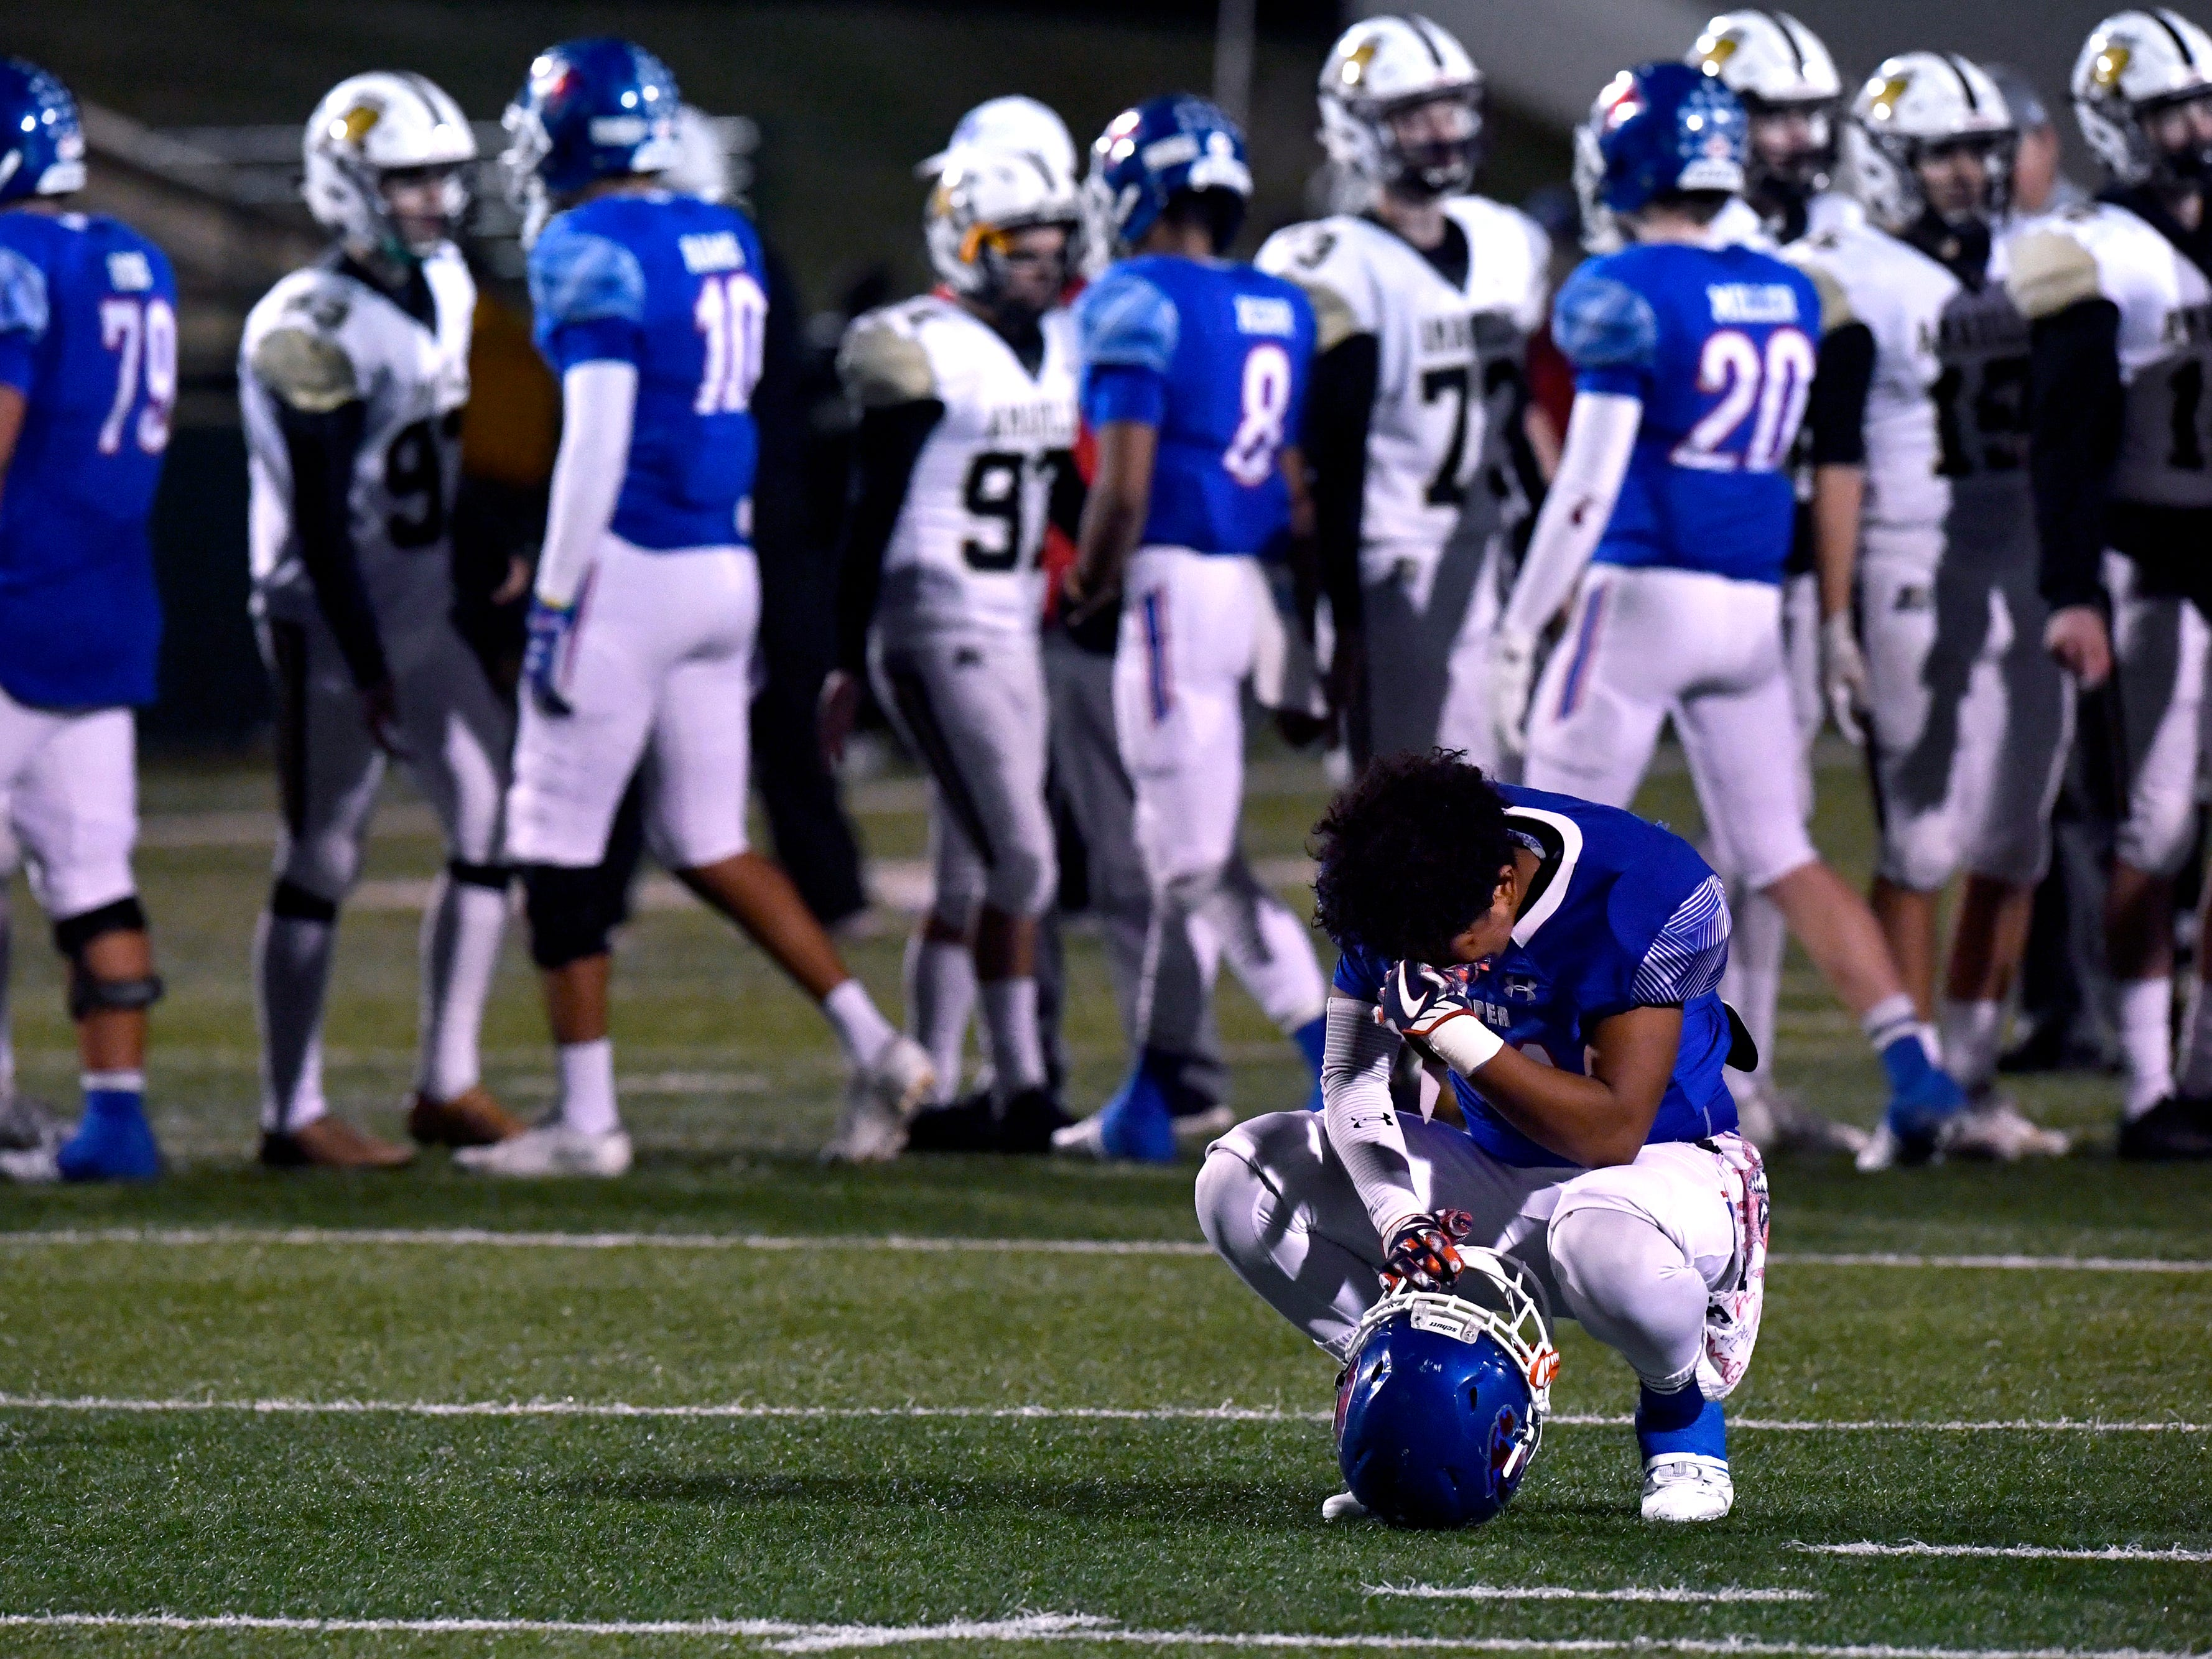 Cooper High's Jalen Trevino-McKoy reflects on the Cougars loss to the Sandies after Friday's game Nov. 9, 2018. Final score was 58-27, Amarillo.